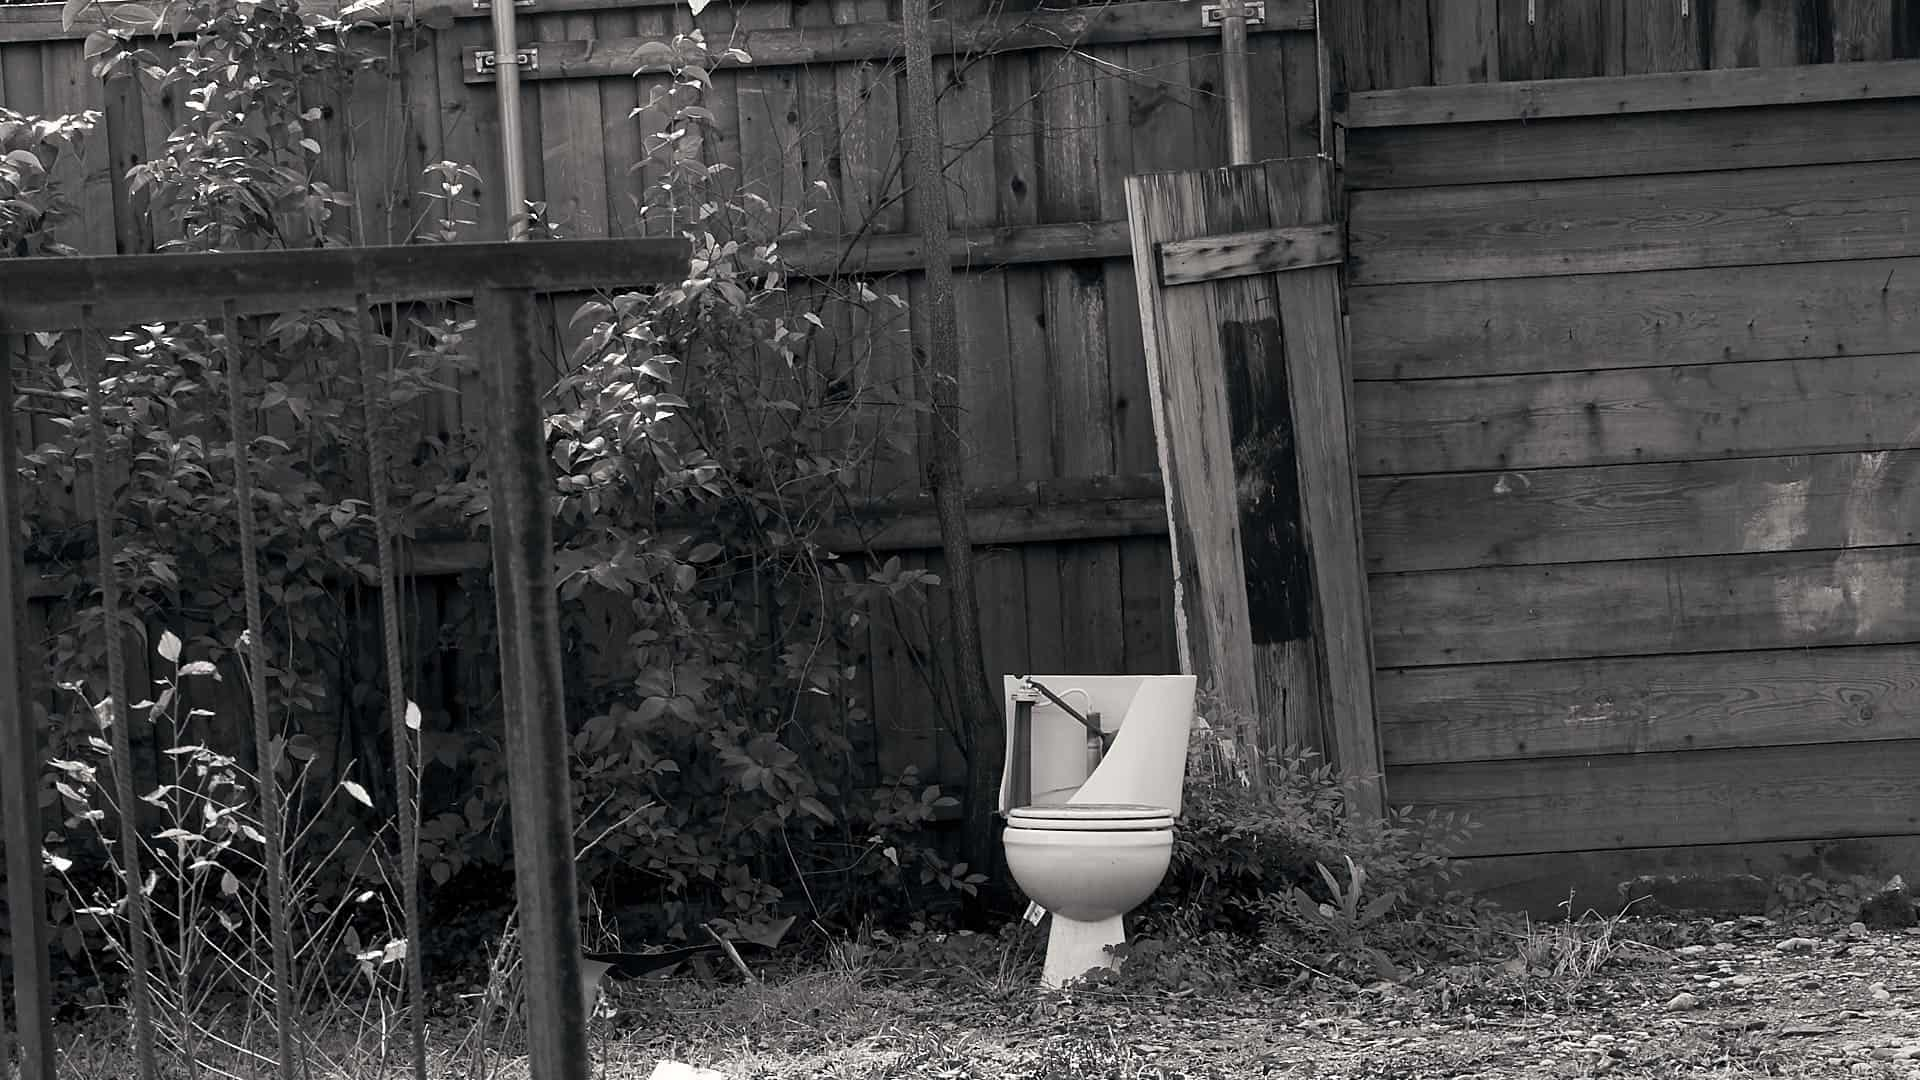 a toilet in the back yard of a house under renovation